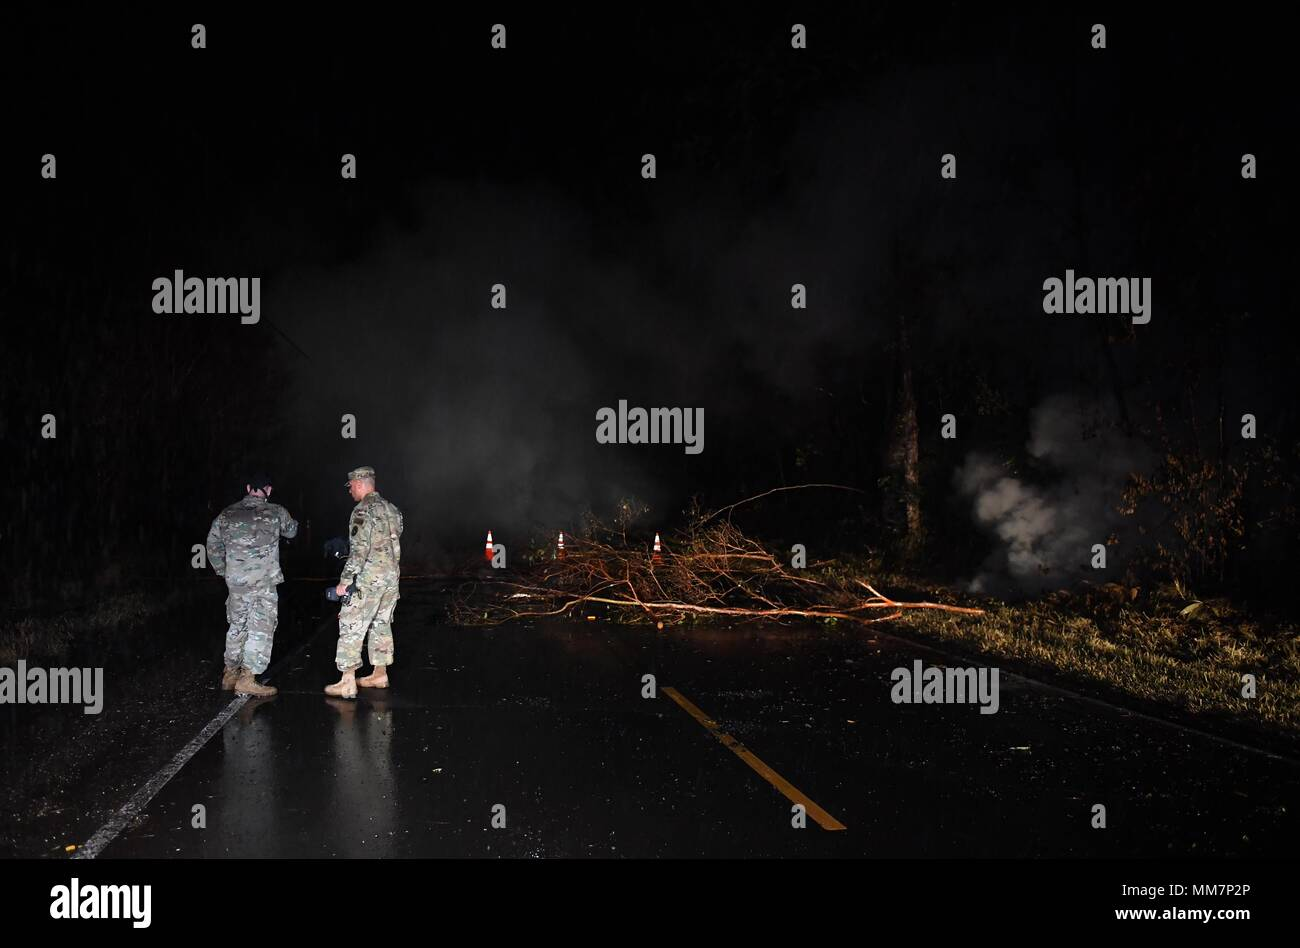 Hawaii, USA. 10th May, 2018. Two U.S.army officers check on sulphur dioxide levels at the 13th fissure in Leilani Estate, Hawaii, United States, May 10, 2018. According to reports of the Hawaii State government, eruptions of the Kilauea Volcano had forced the evacuation of thousands of people. Credit: Tao Xiyi/Xinhua/Alamy Live News - Stock Image